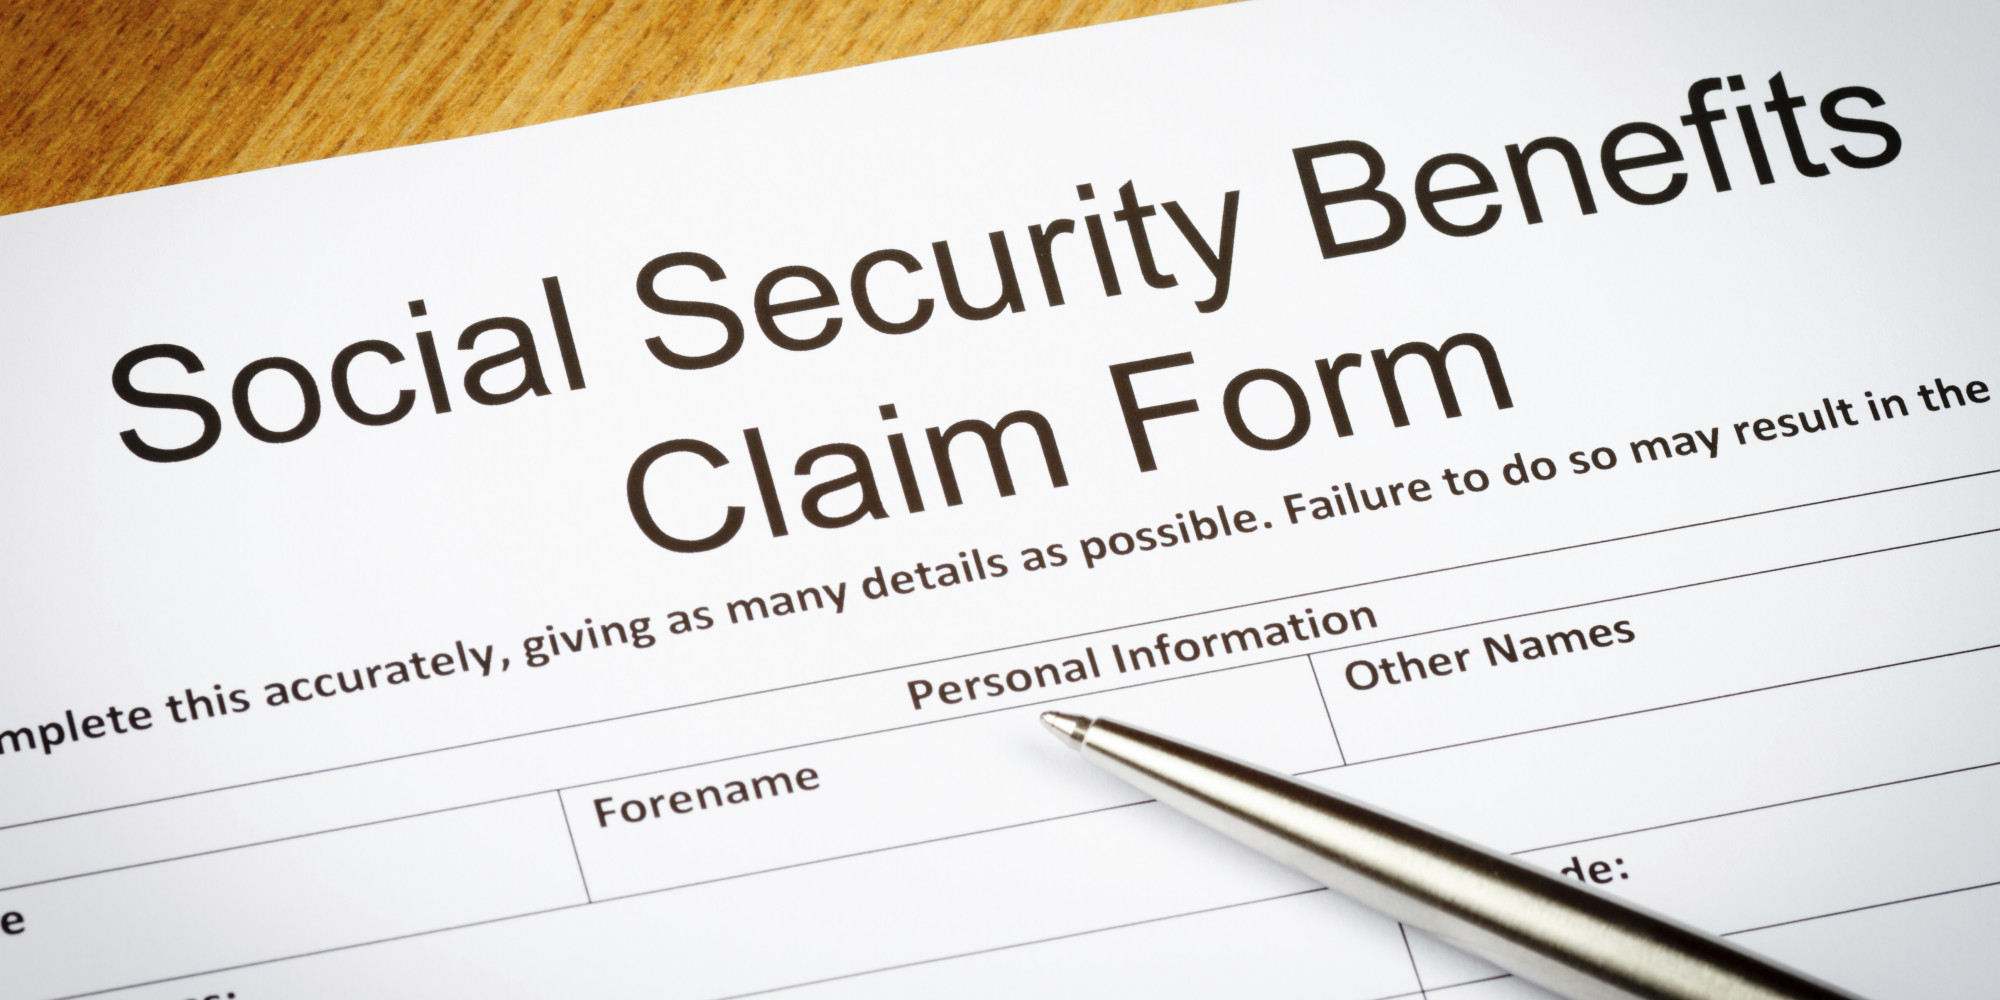 Social Security Benefits claim form